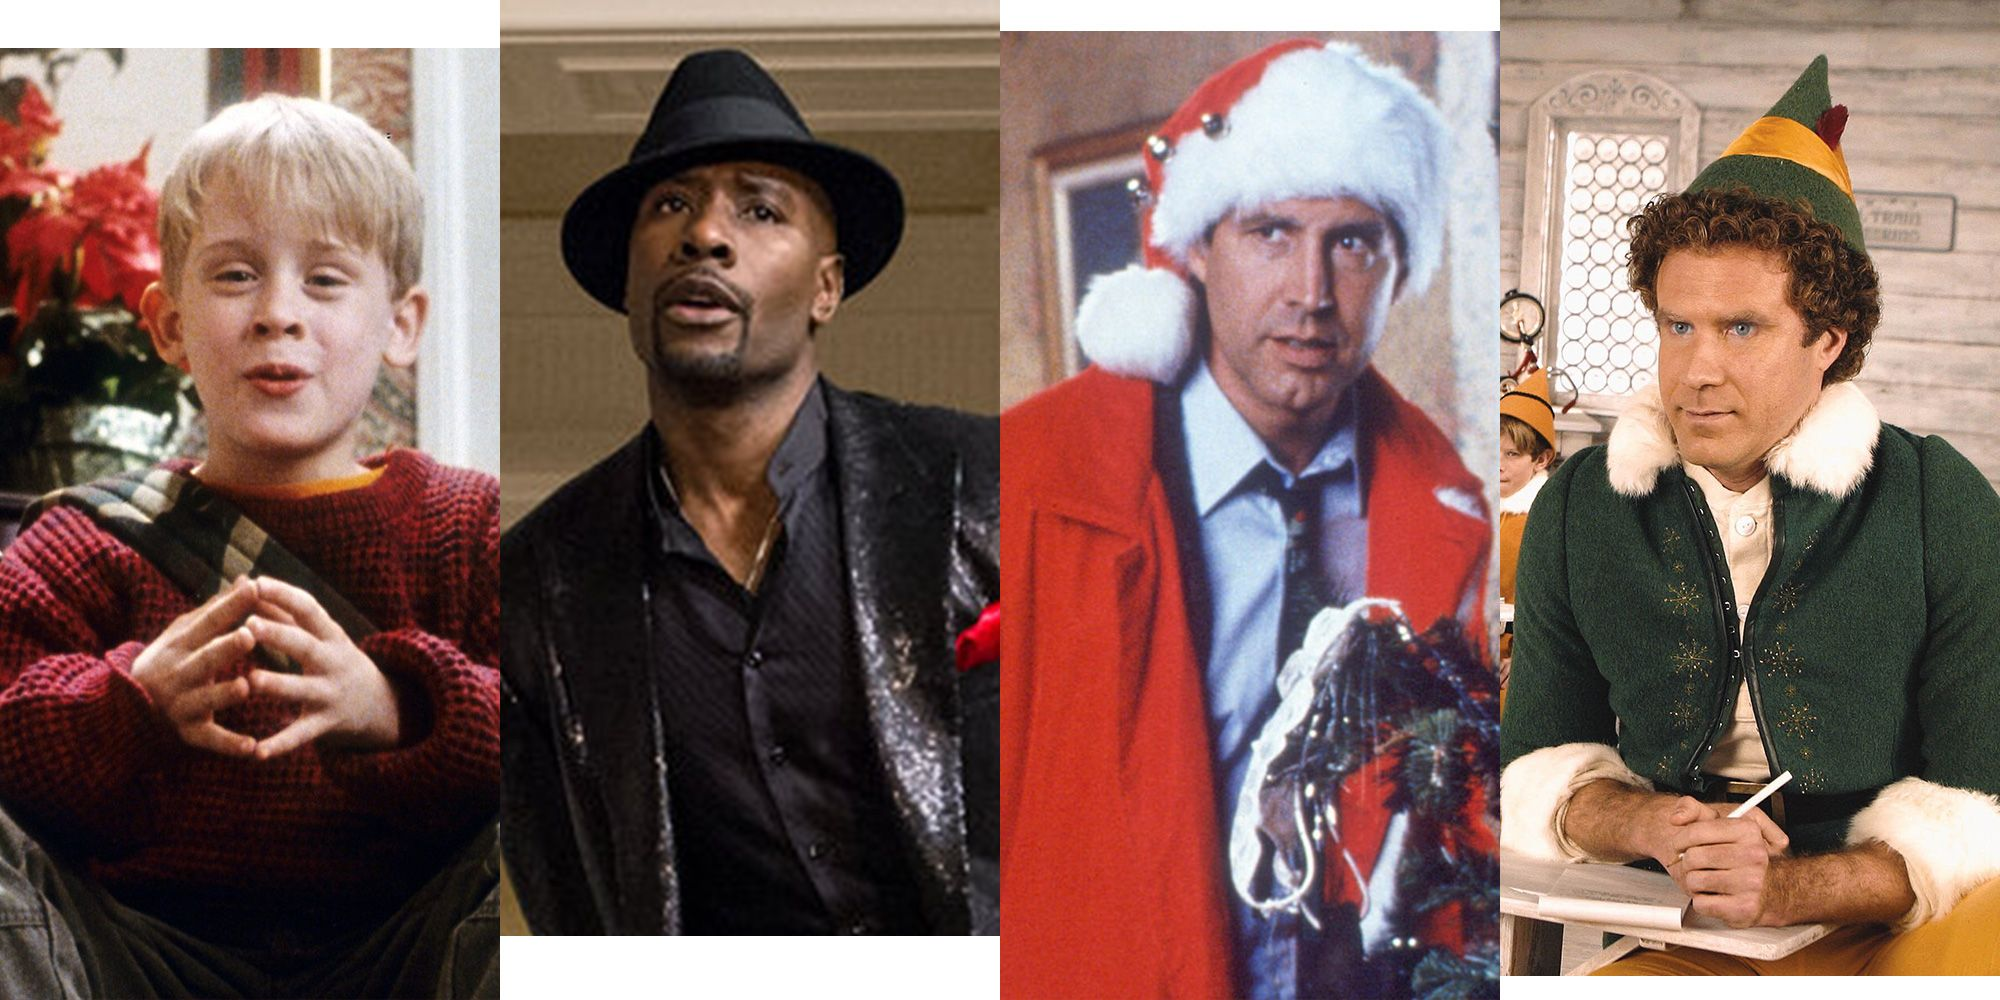 40 Best Christmas Movies of All Time - Best Christmas Films Ever Made